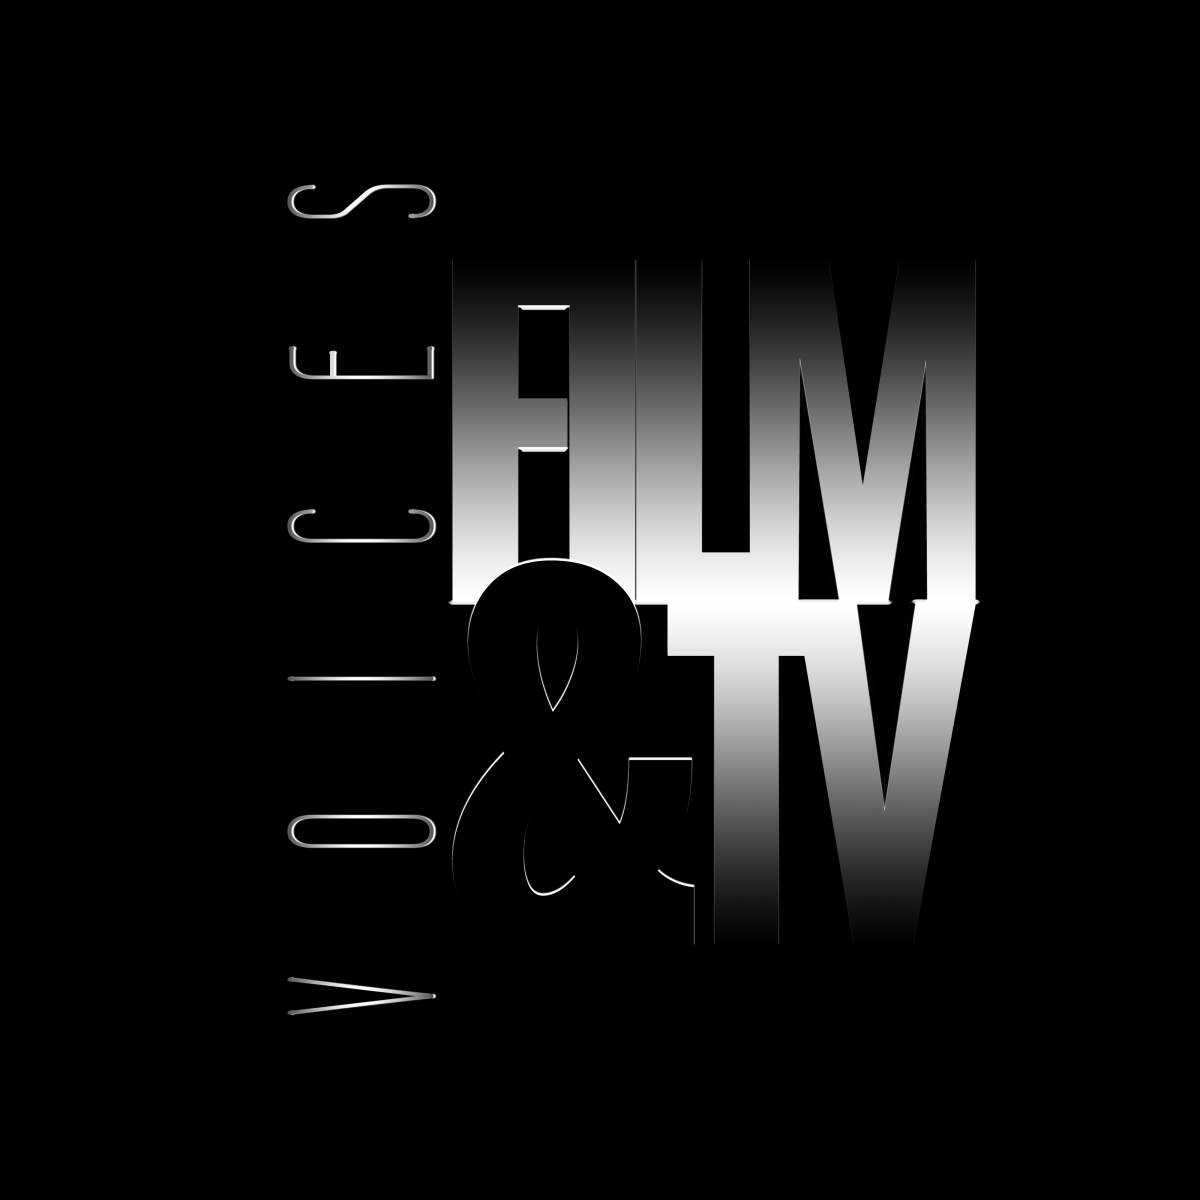 Voices Film & Television...For Cinephiles: The Articles